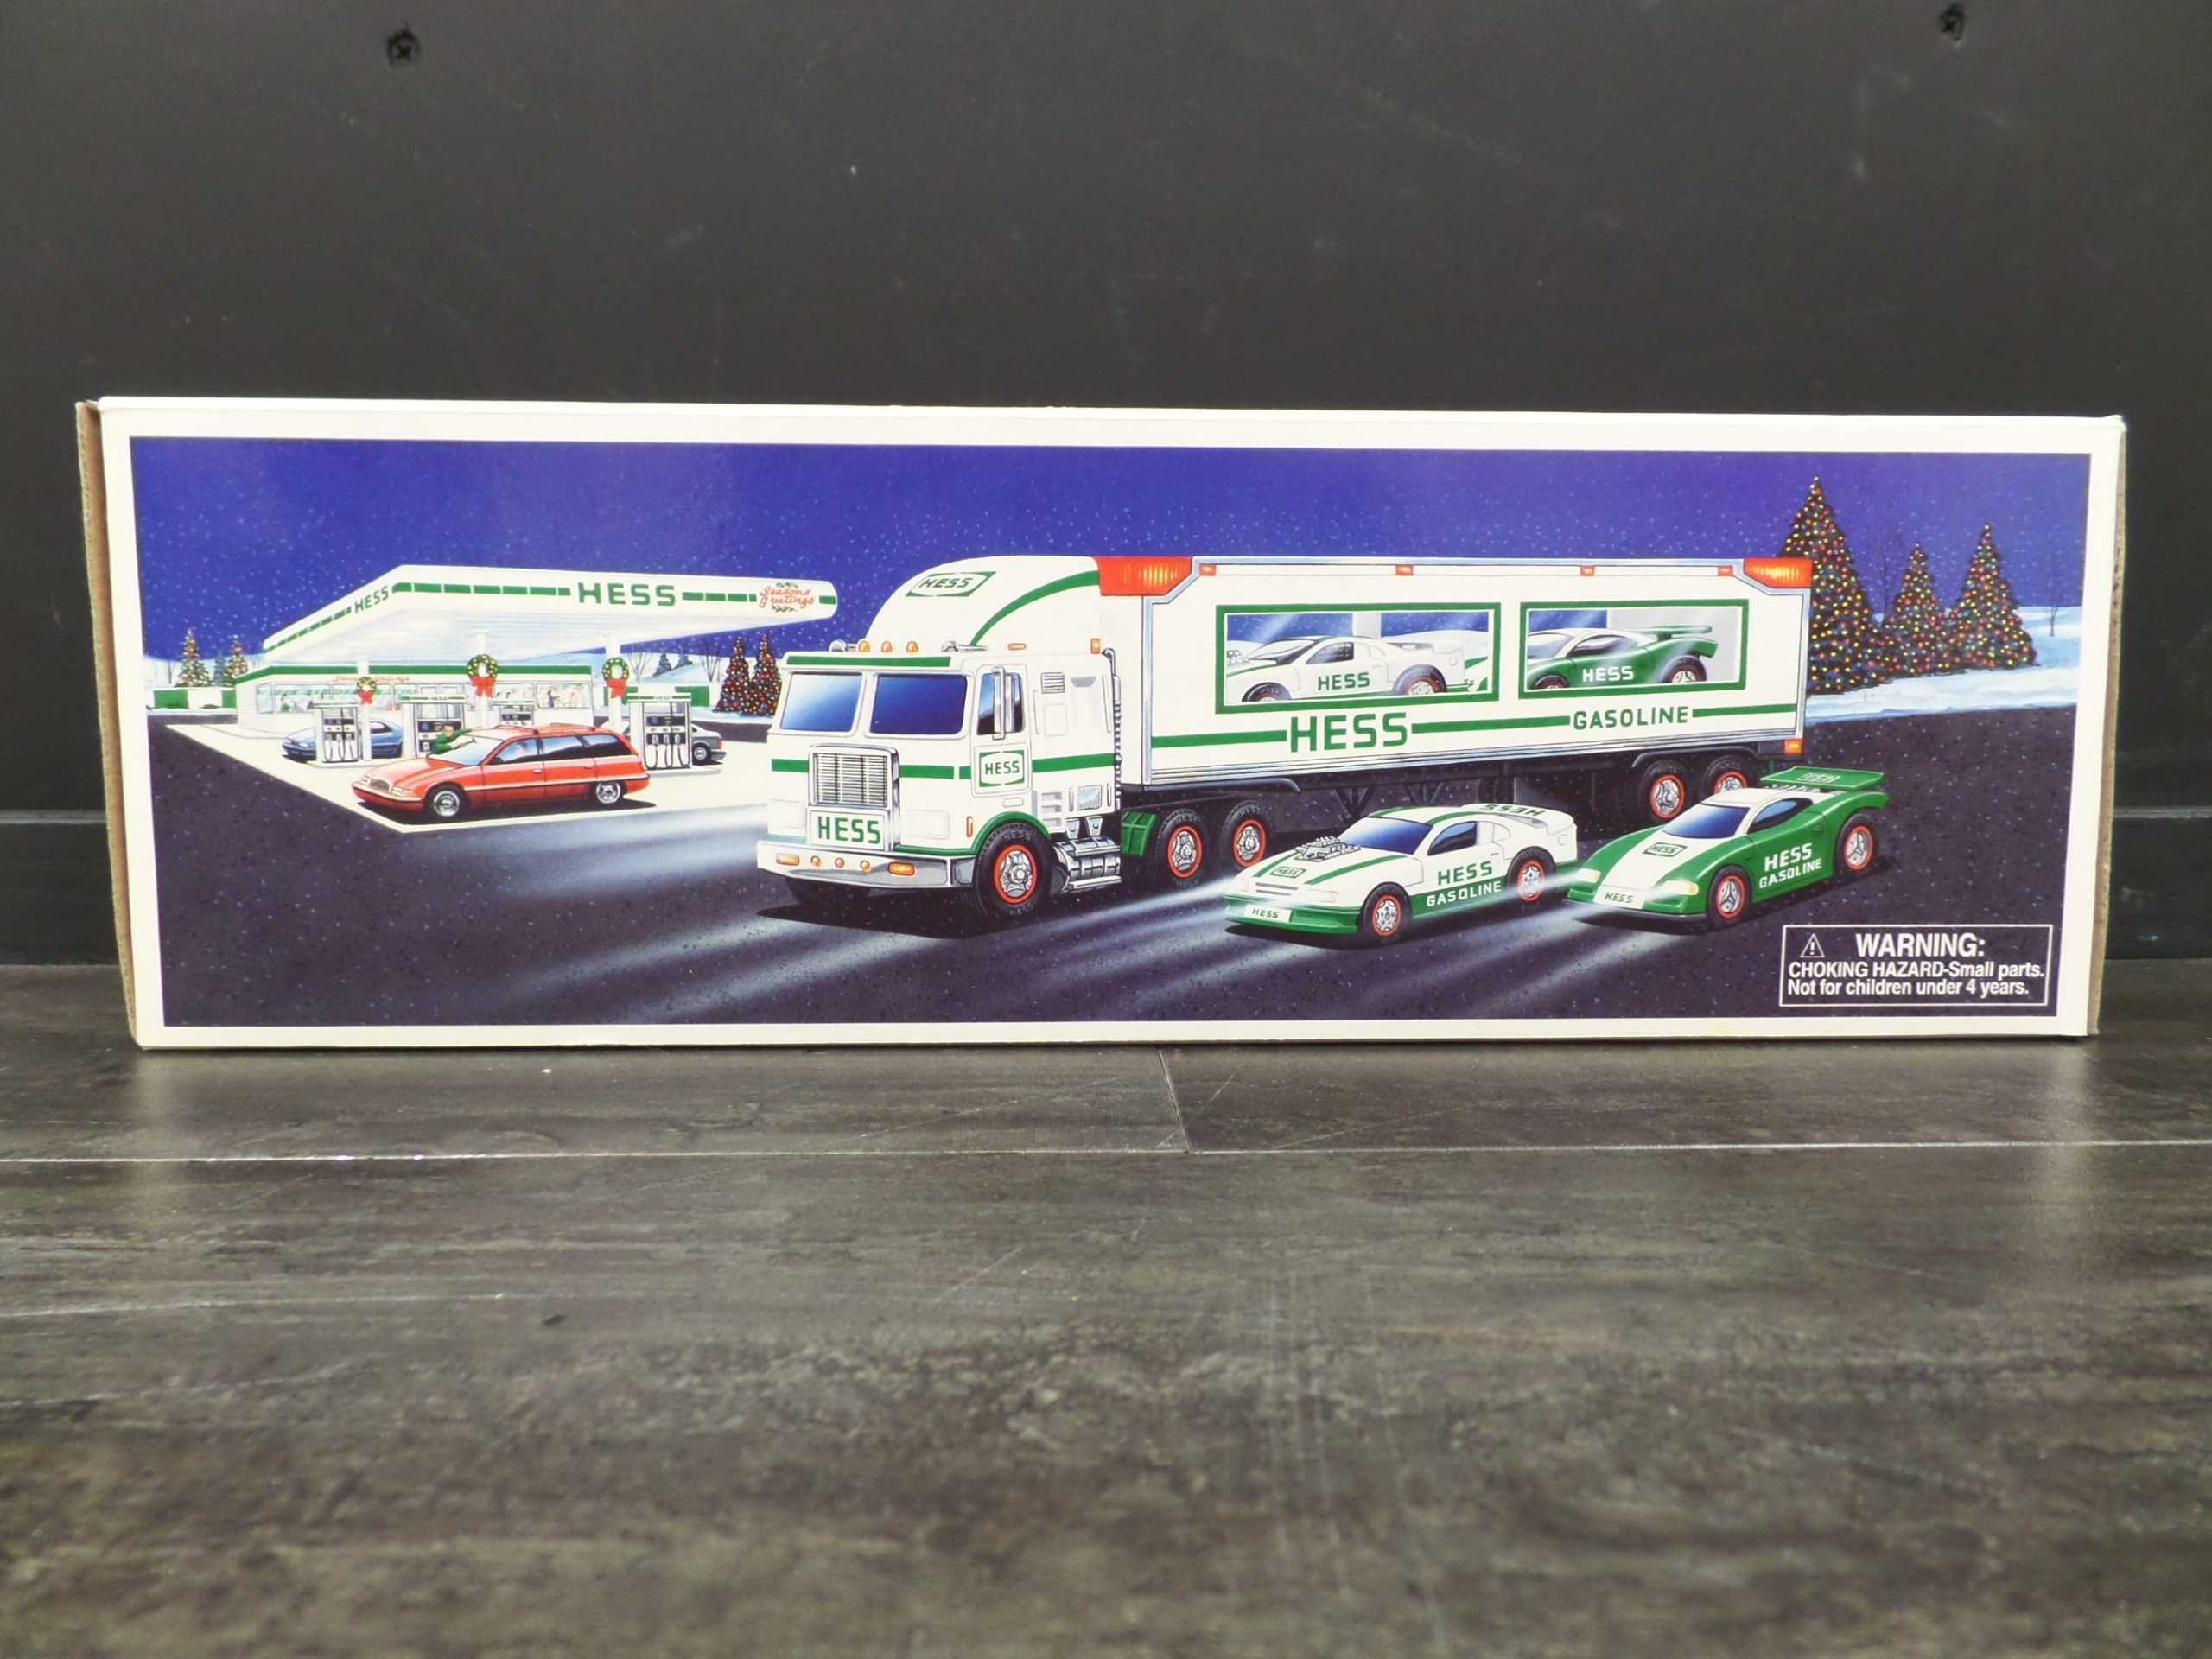 1997 HESS TRUCK WITH RACERS <br/> Donated by: WPBS SUPPORTER <br/> Valued at: $50